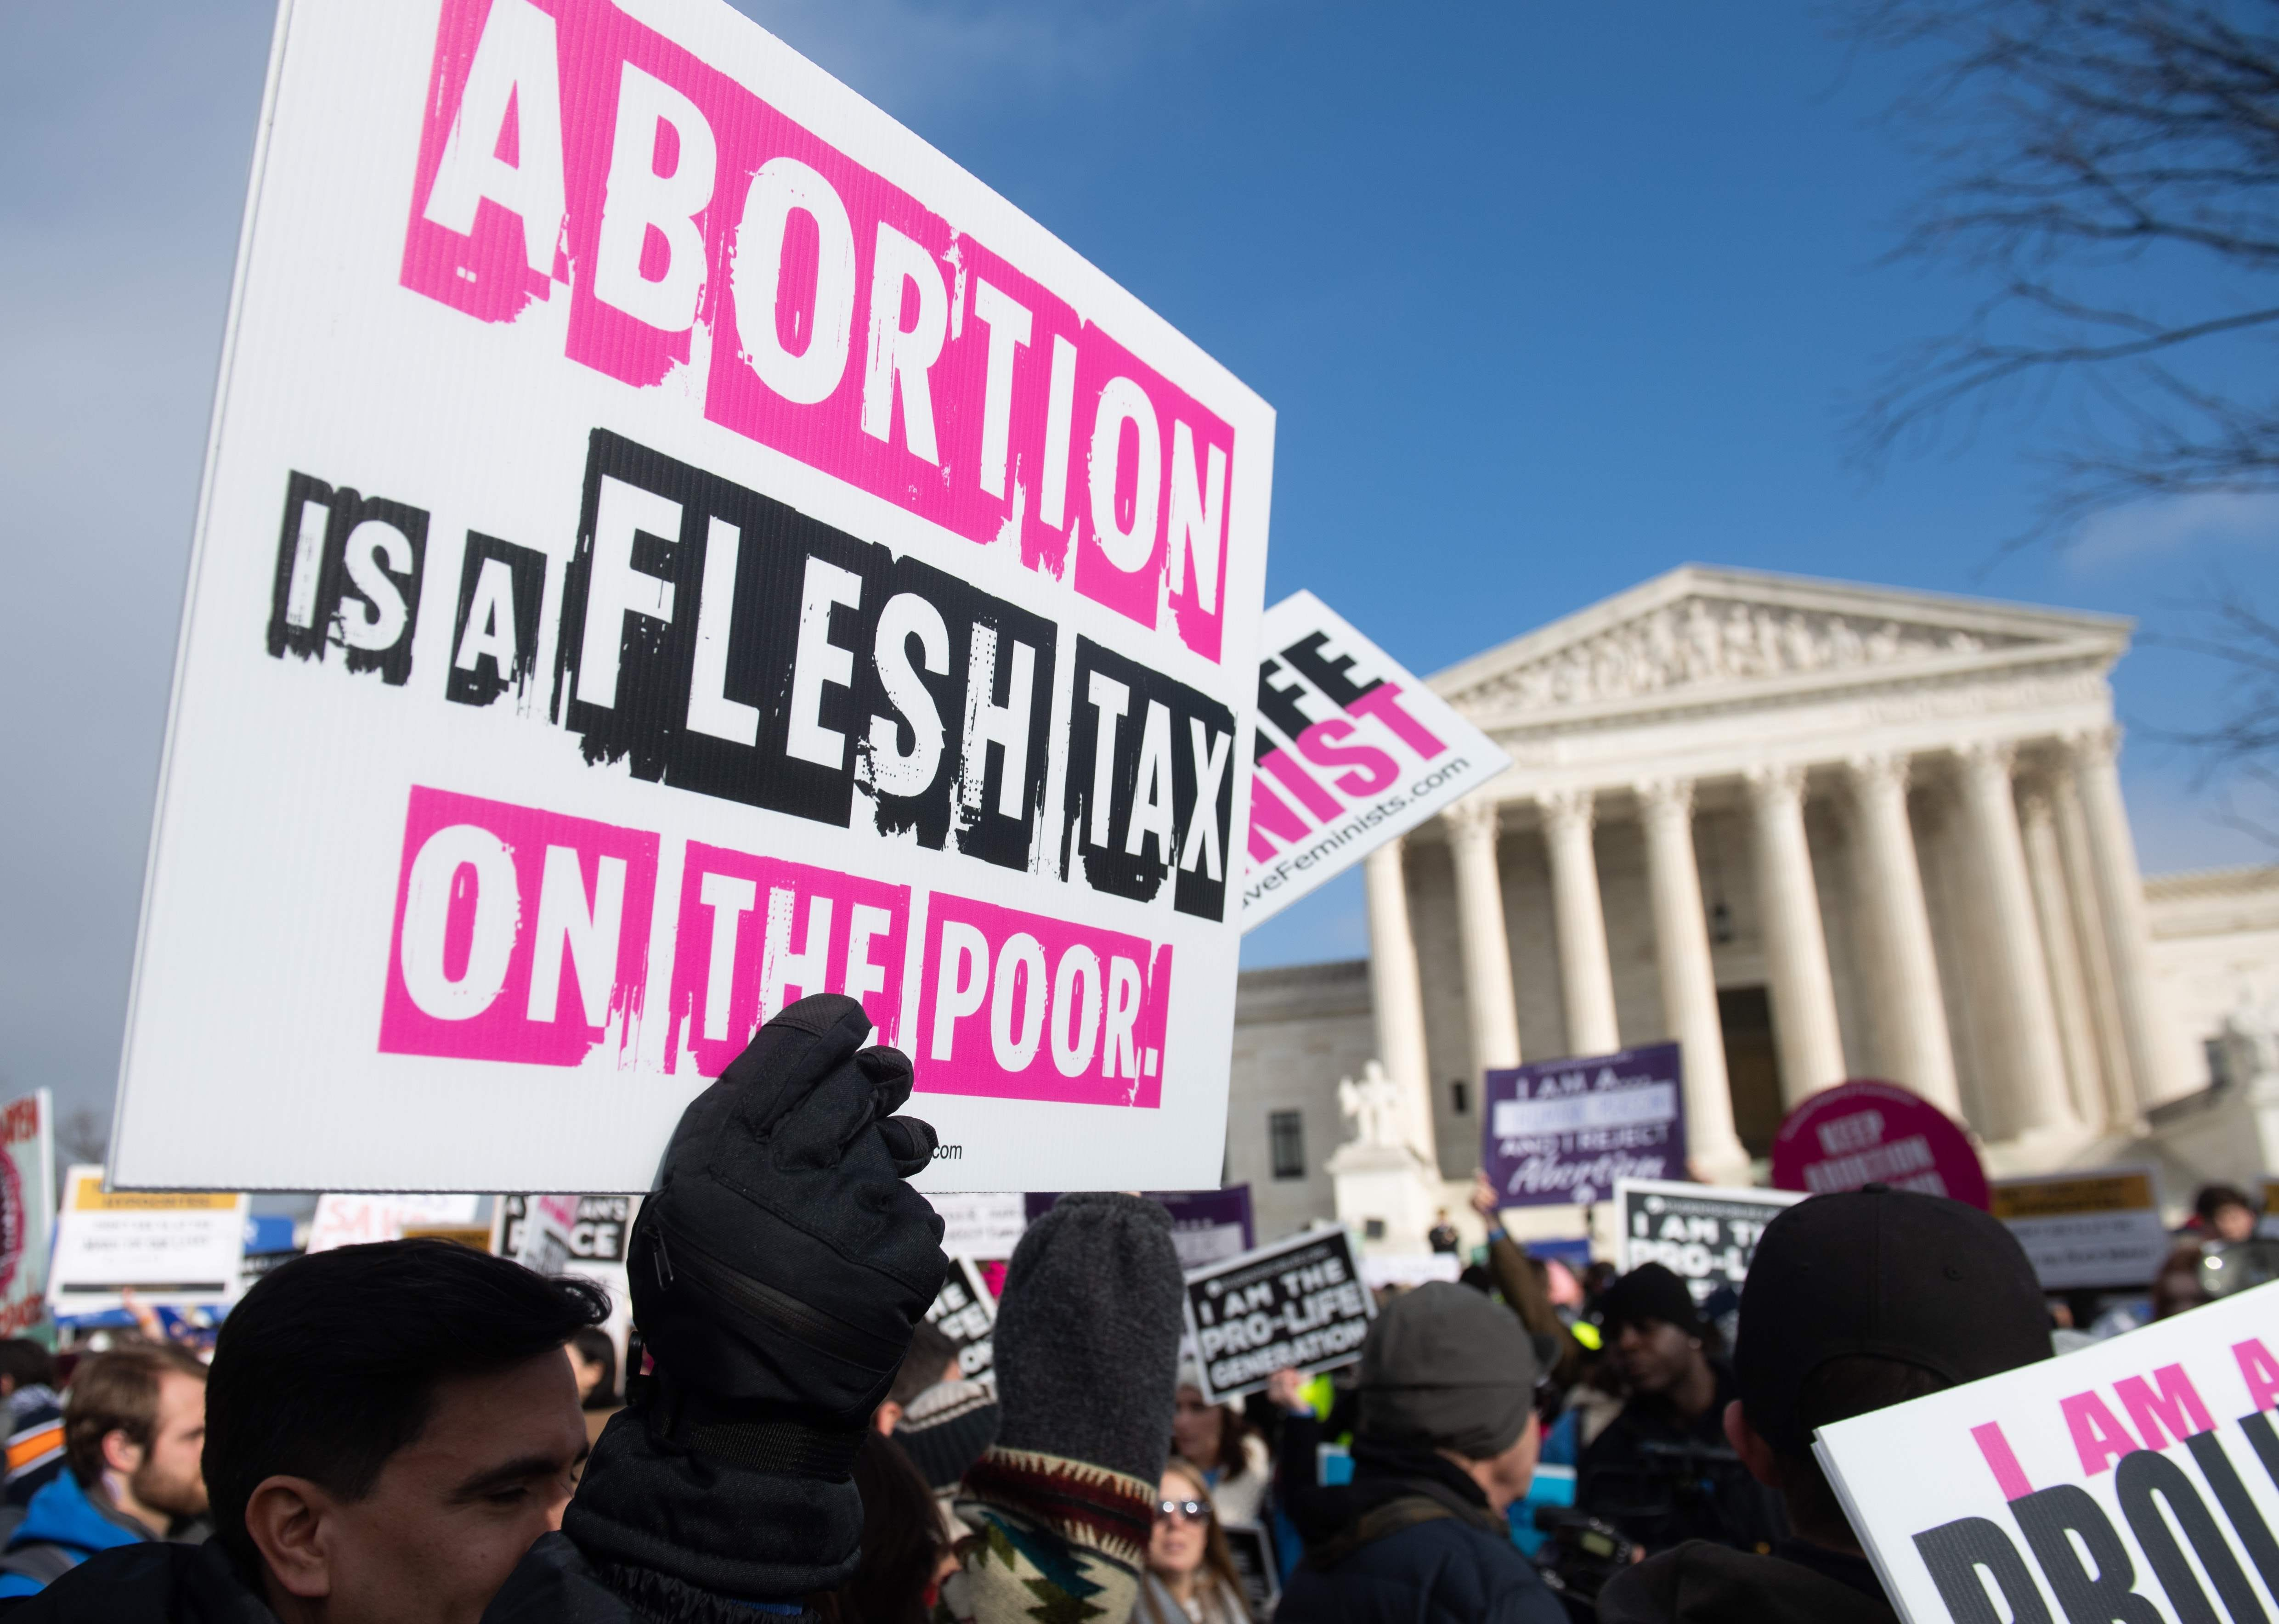 """Anti-abortion activists participate in the """"March for Life,"""" an annual event to mark the anniversary of the 1973 Supreme Court case Roe v. Wade, in front of the US Supreme Court, on January 18, 2019."""